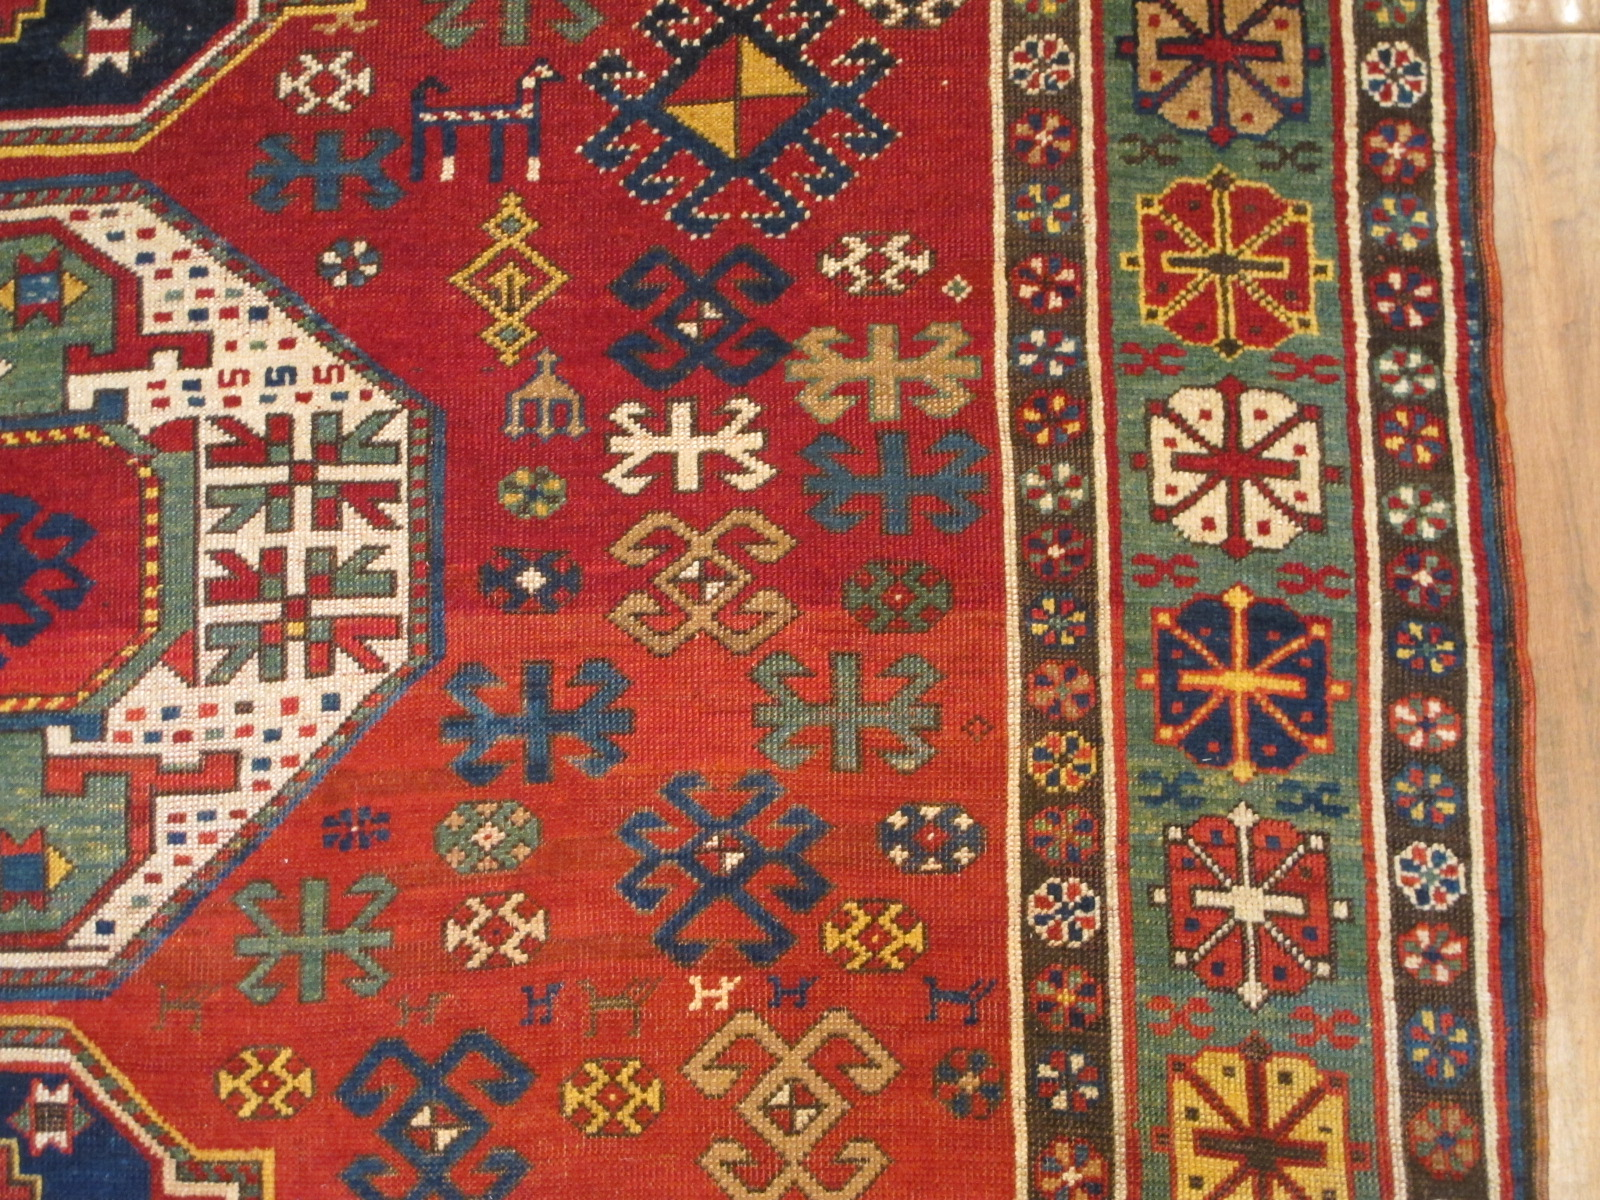 12989 antique Caucasian Kazak rug 6,2x11,4 (1)